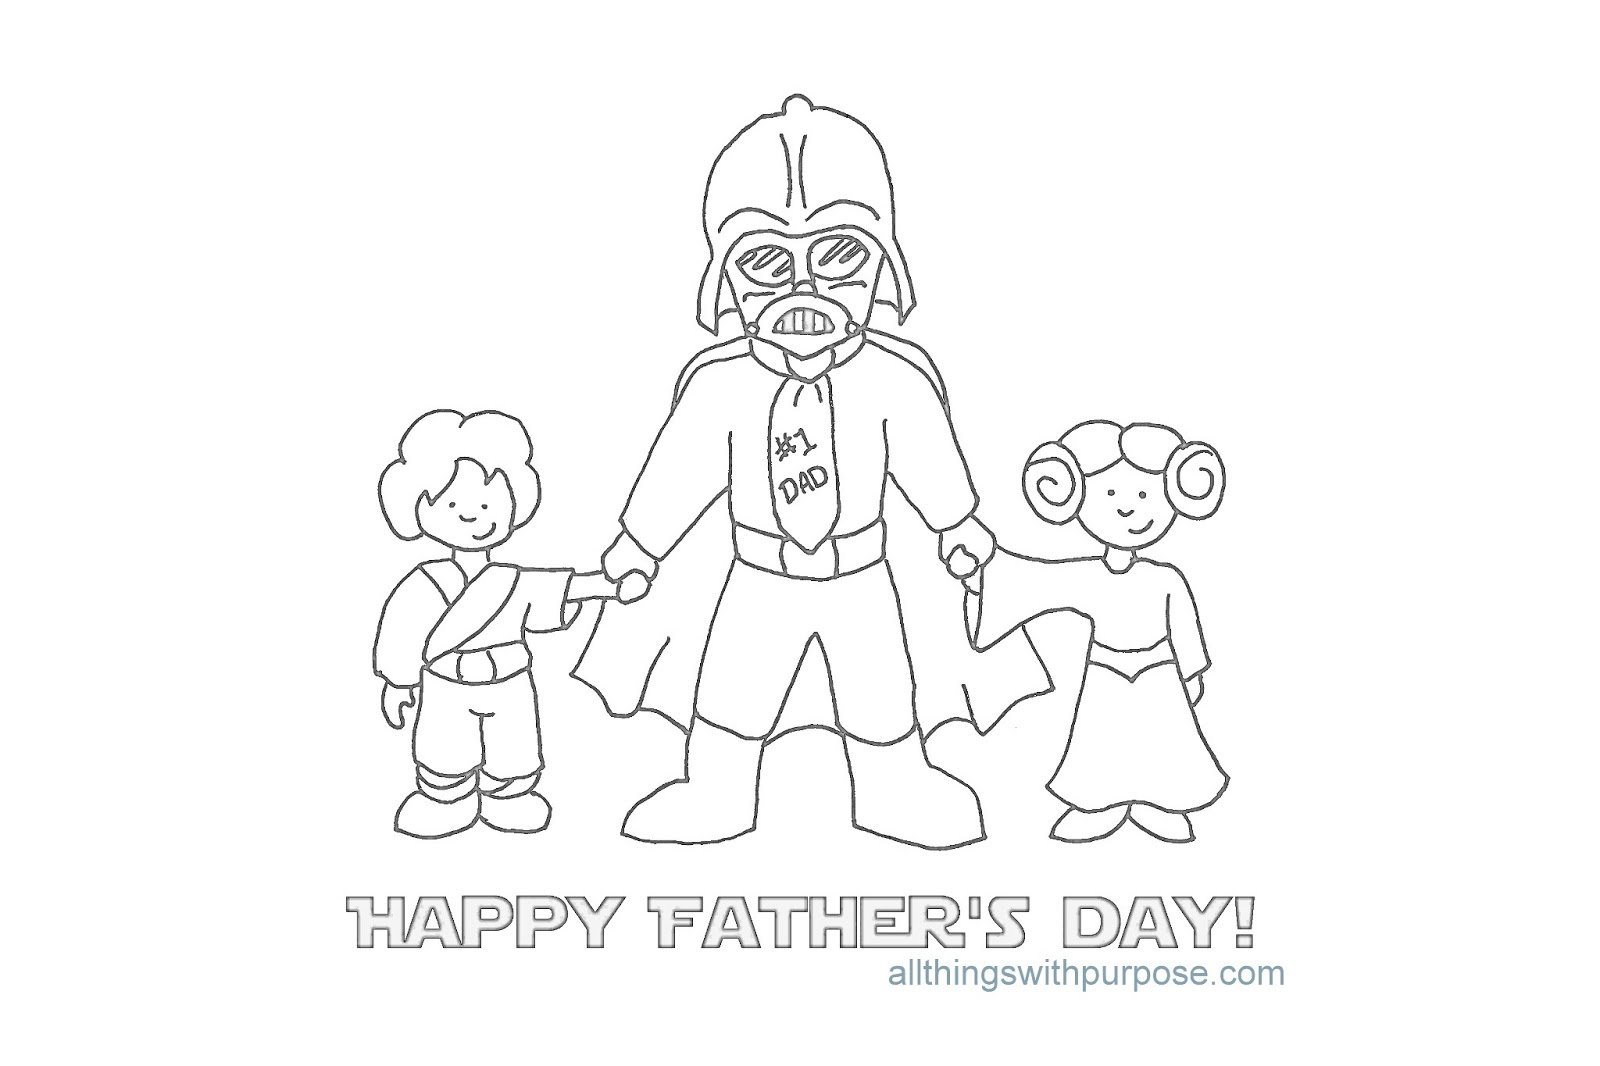 Fun Fathers Day Printable Images